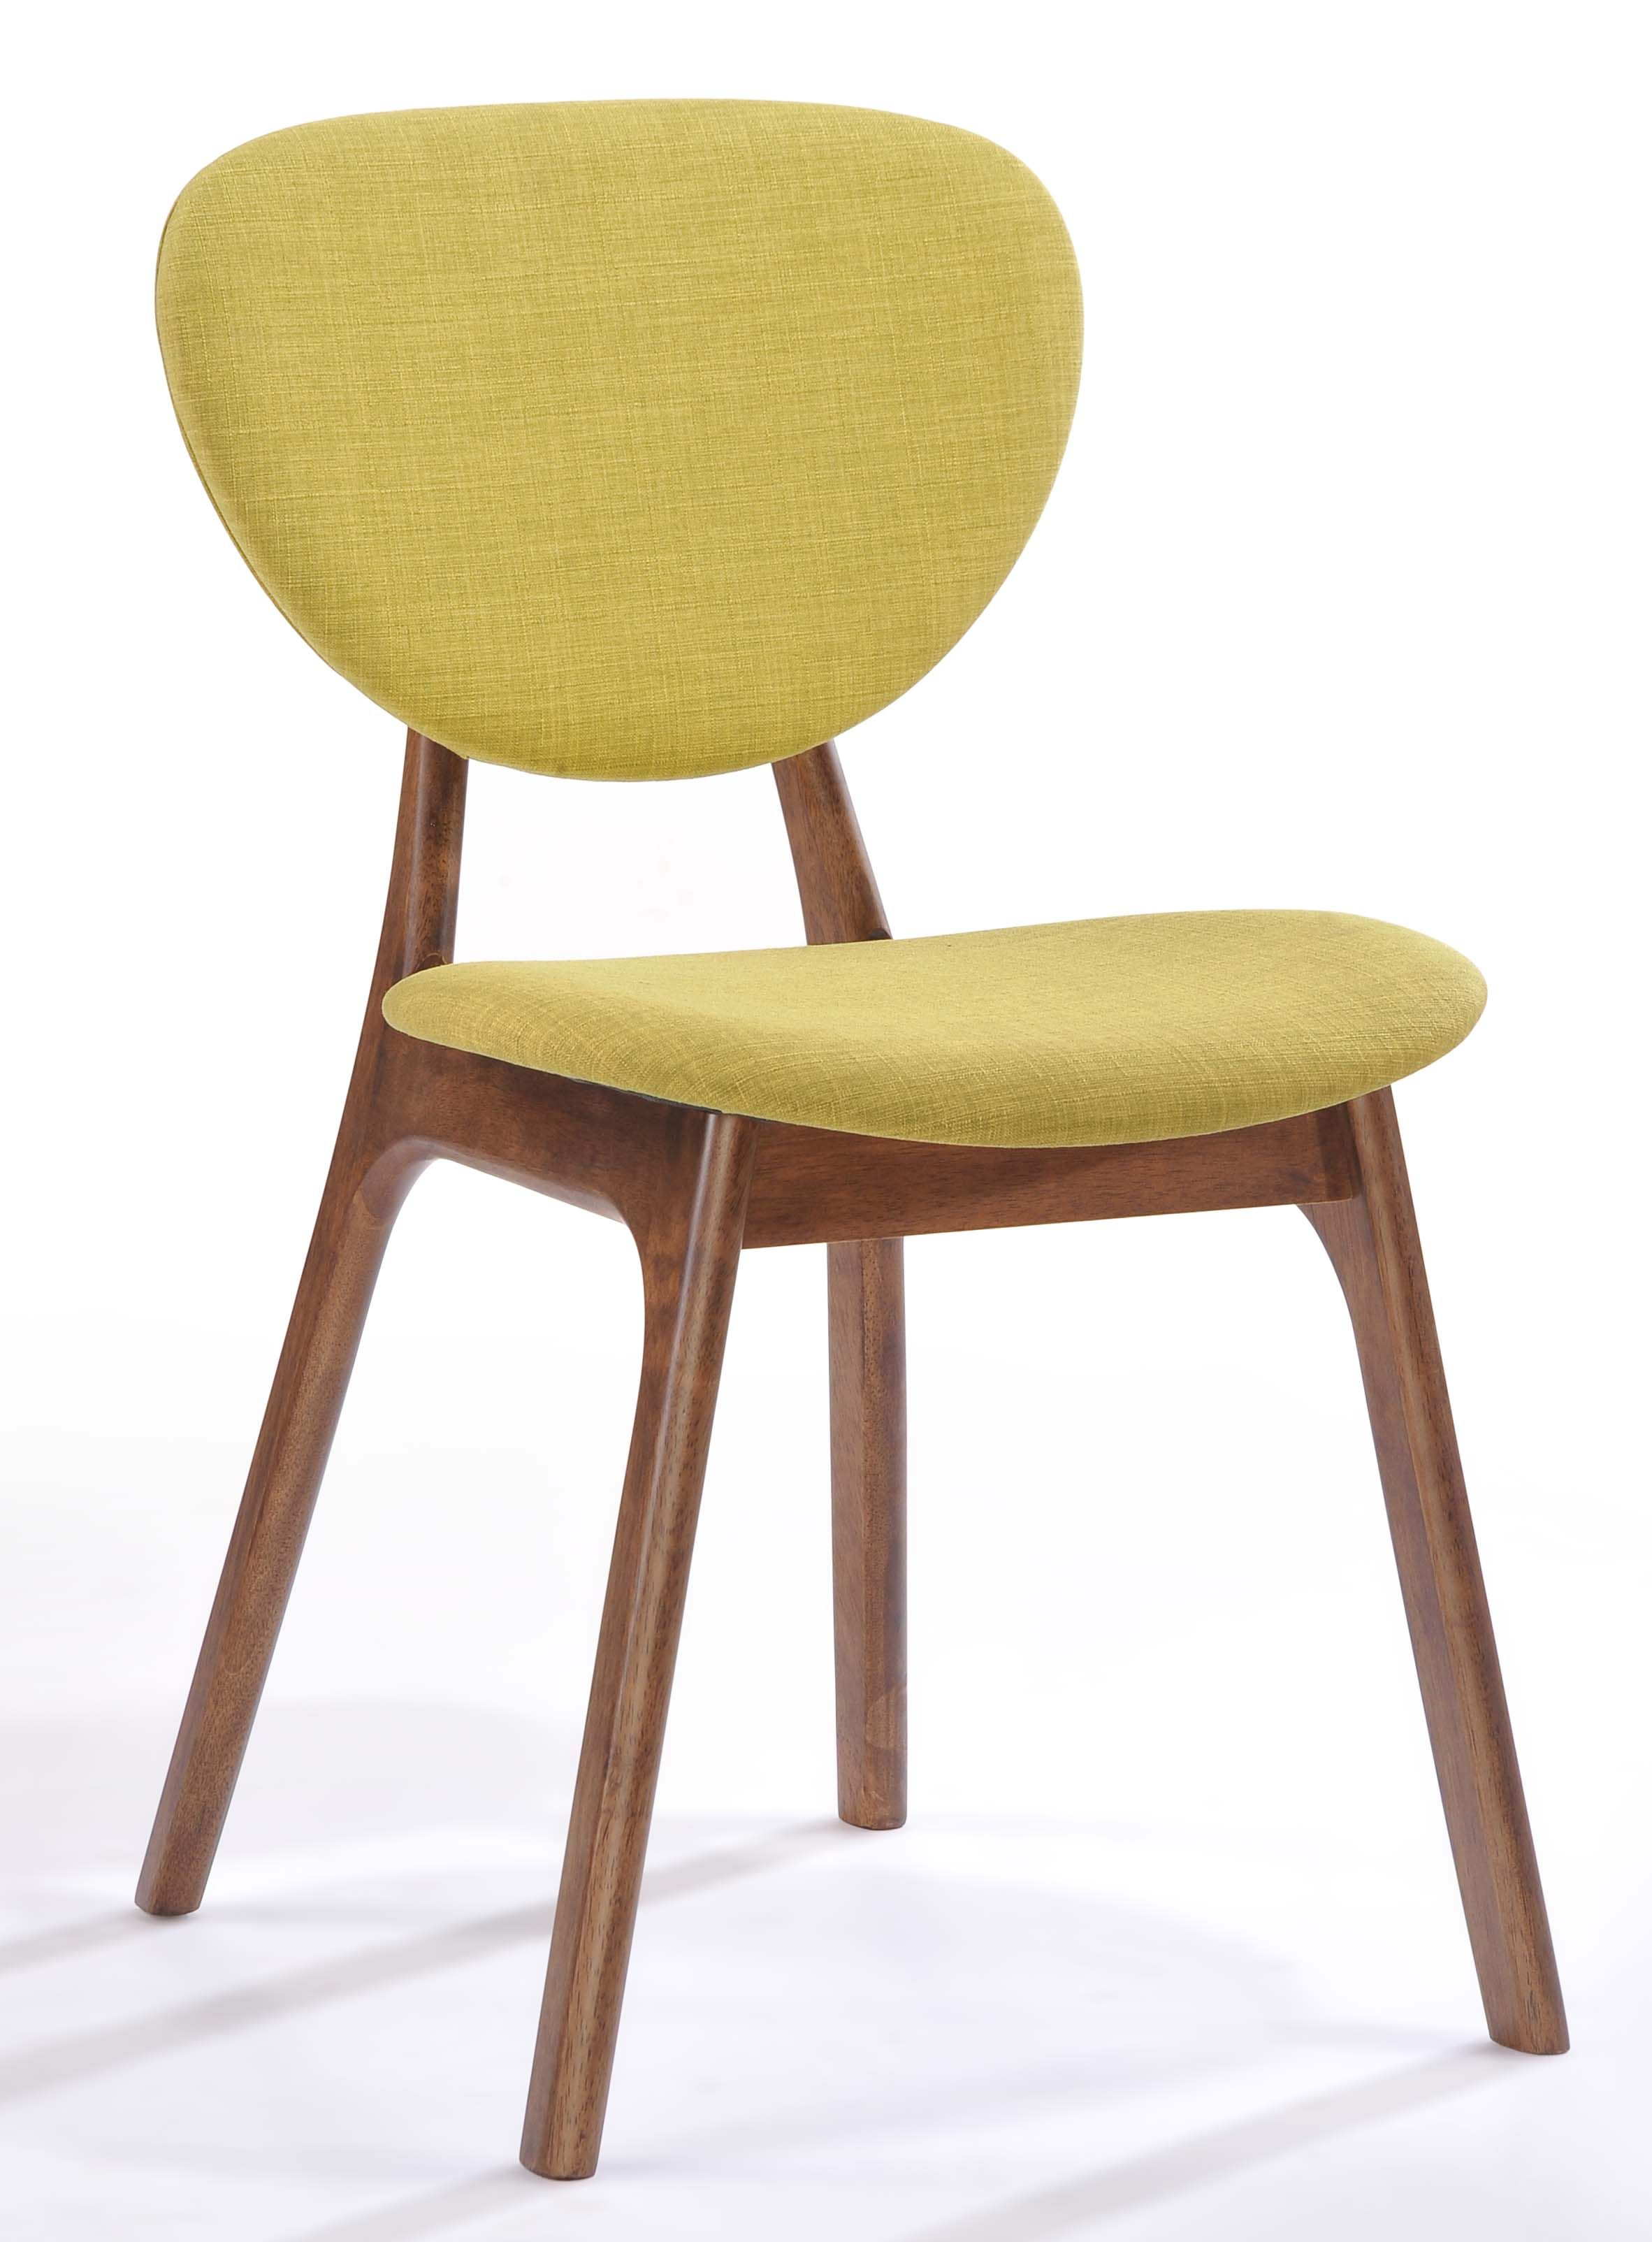 Bounce Chair Bounce Chair Newclassic Stylehome Danishfurniture Homedecor